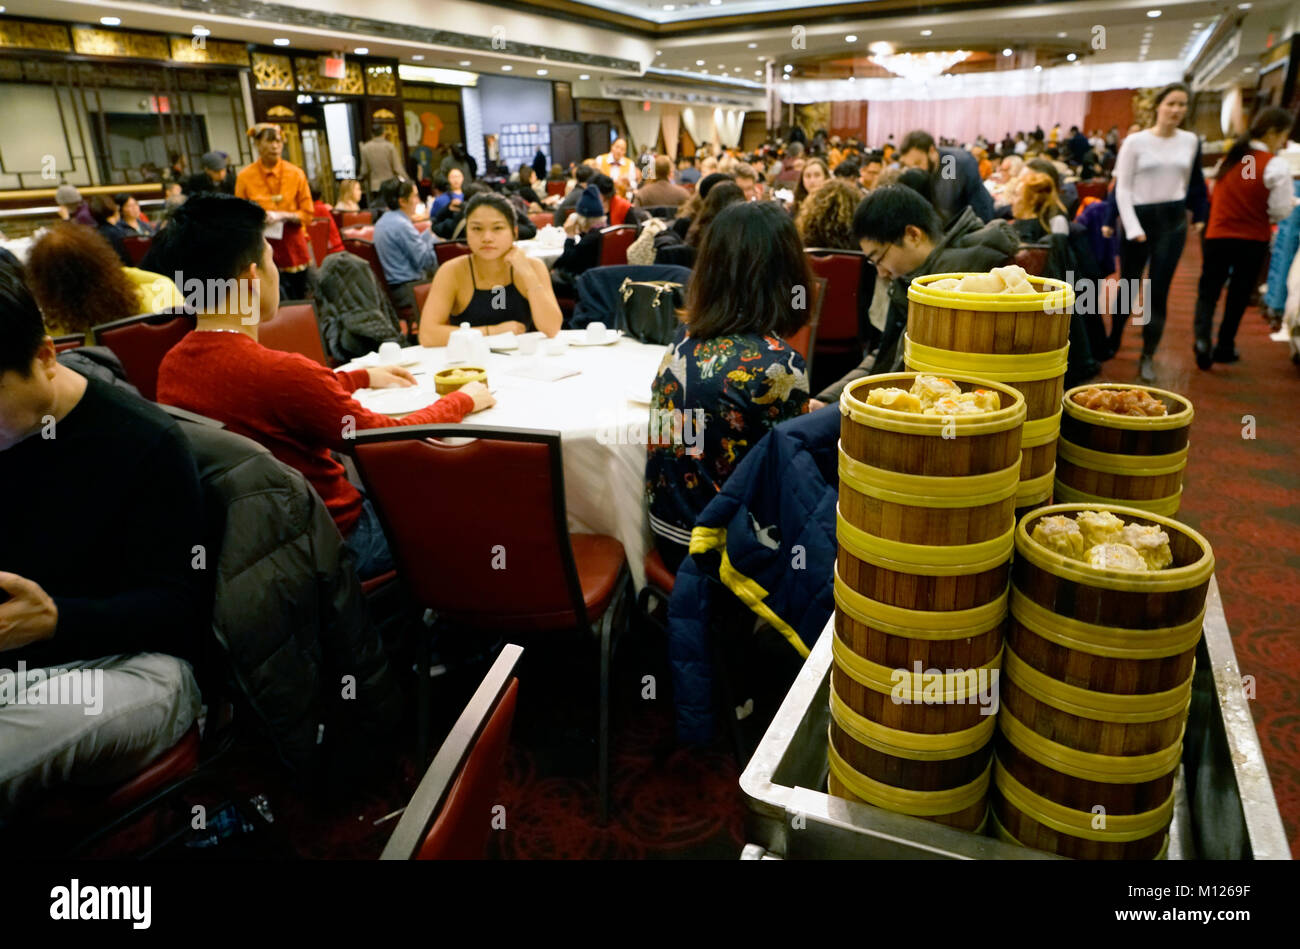 Dim Sum Carts Rolled Out In Crowded Jing Fong Chinese